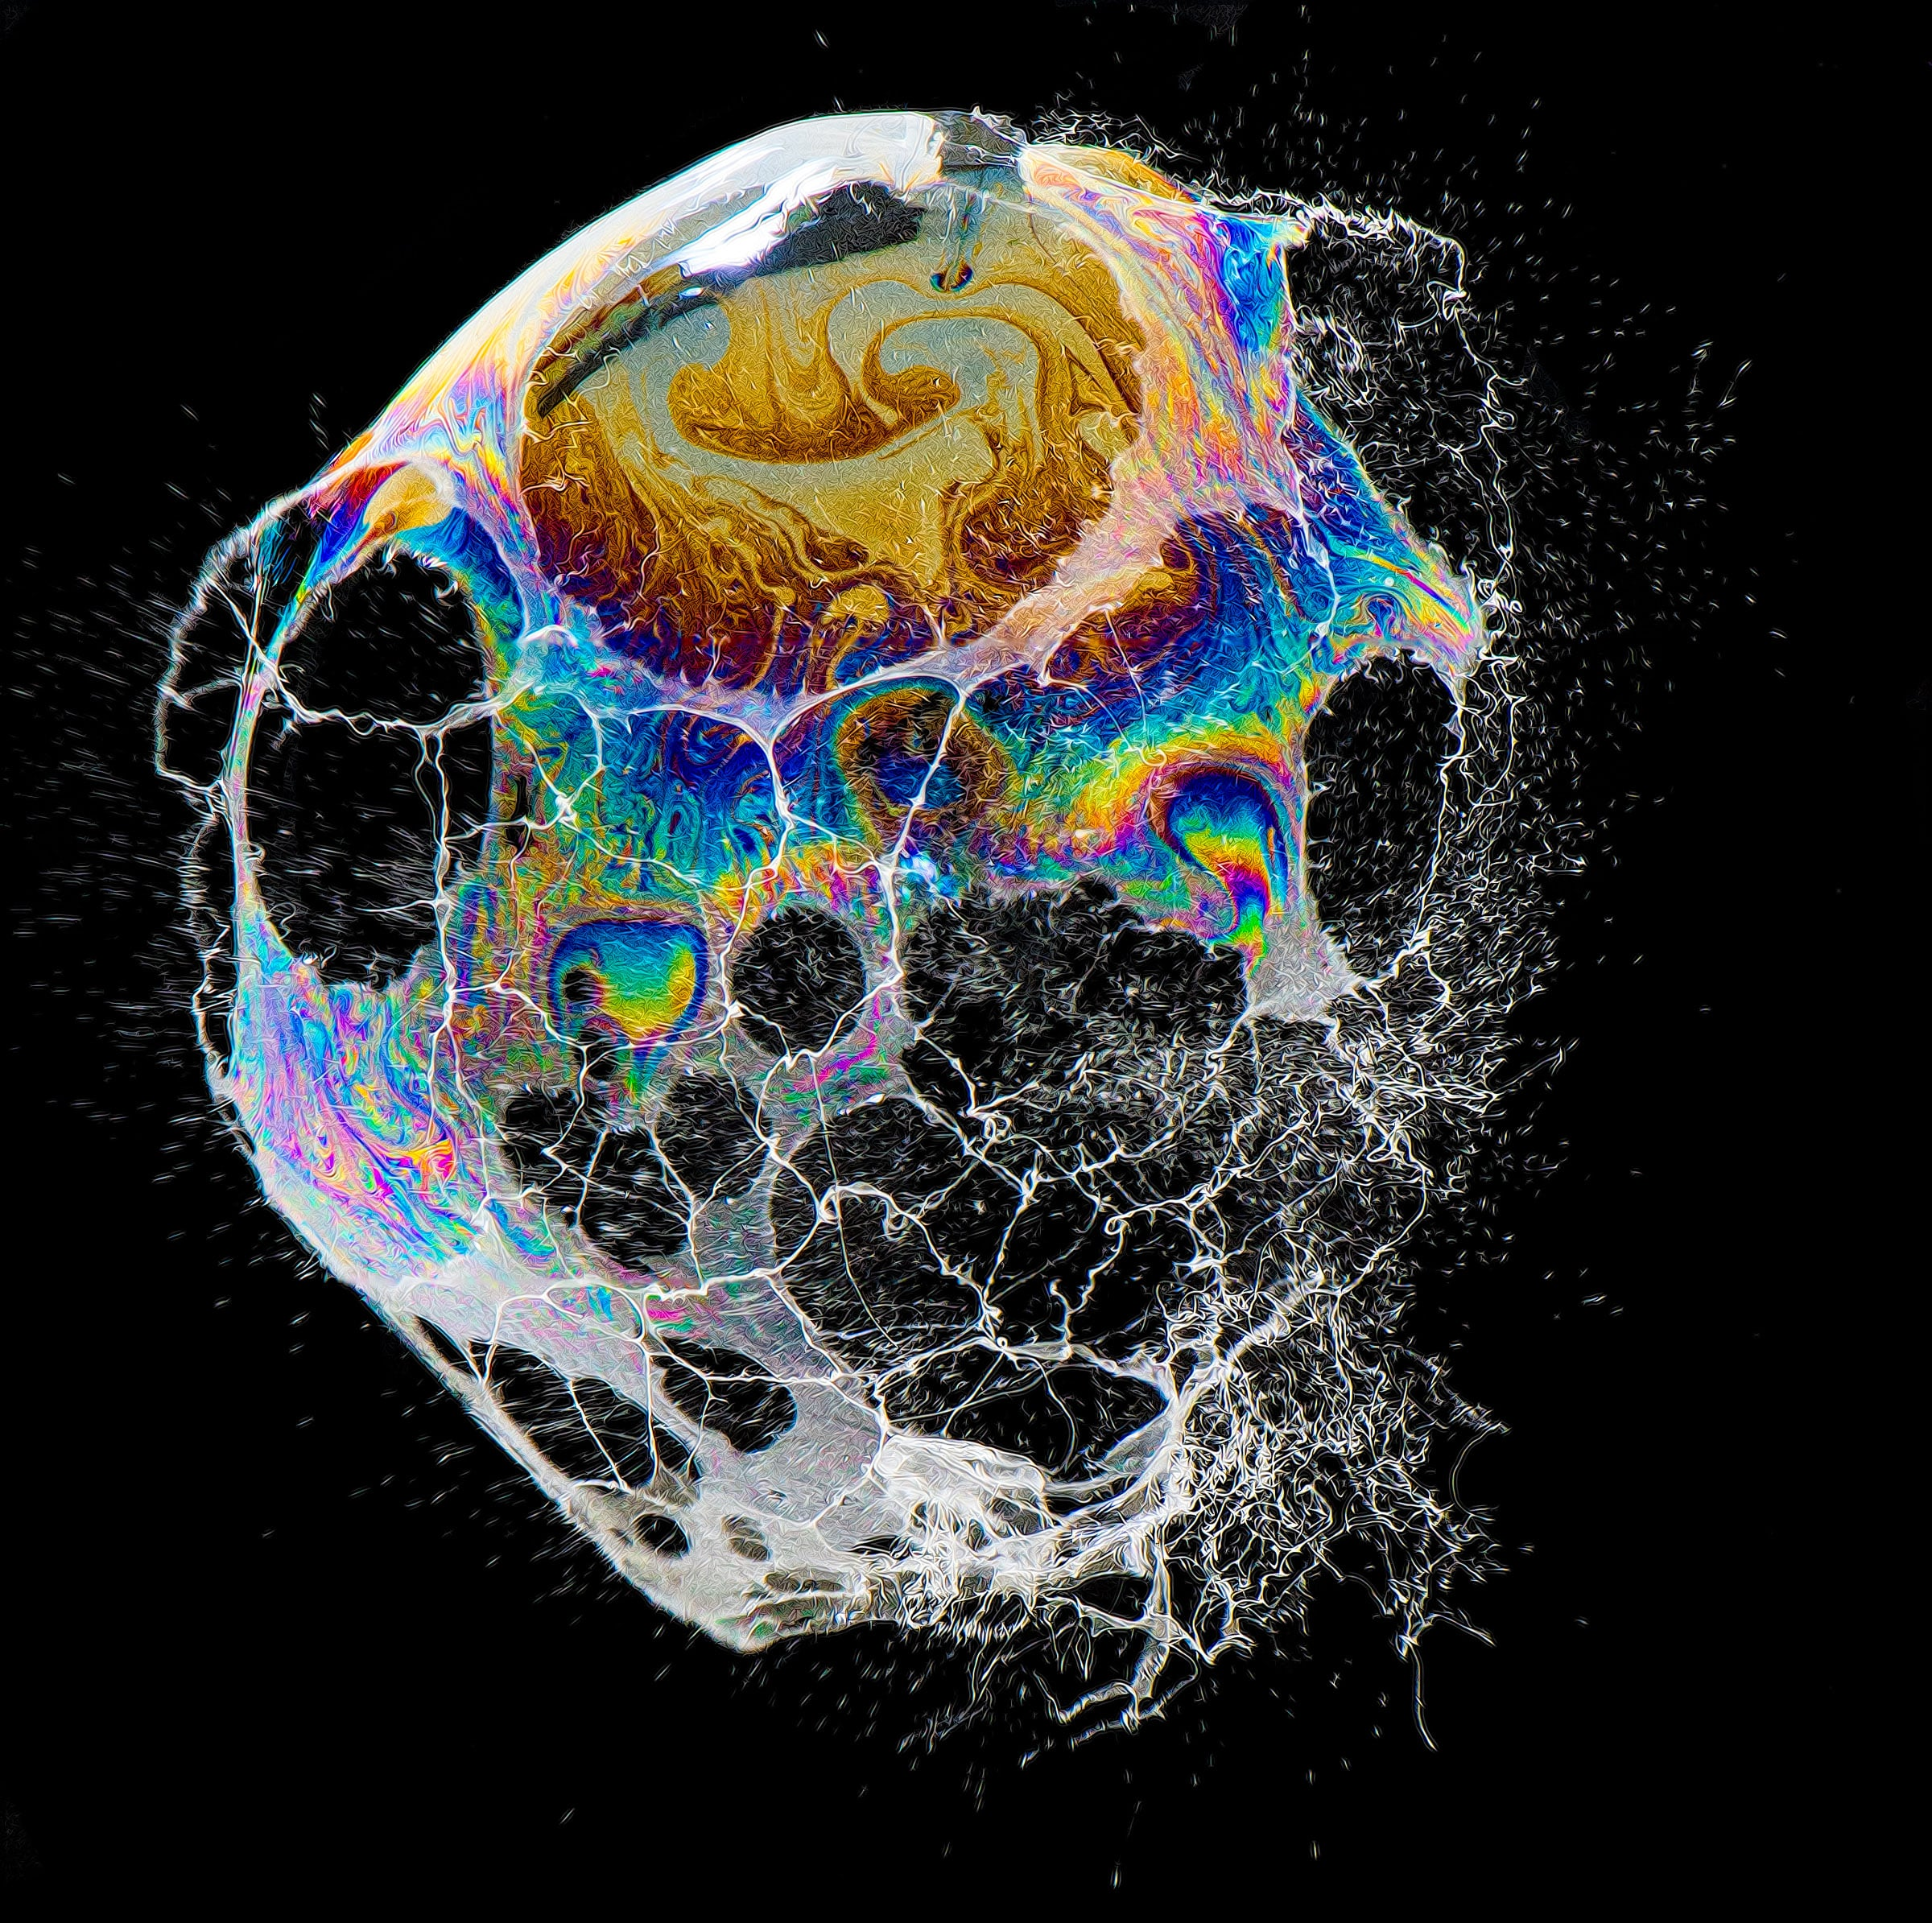 A colorful soap bubble in the process of bursting.